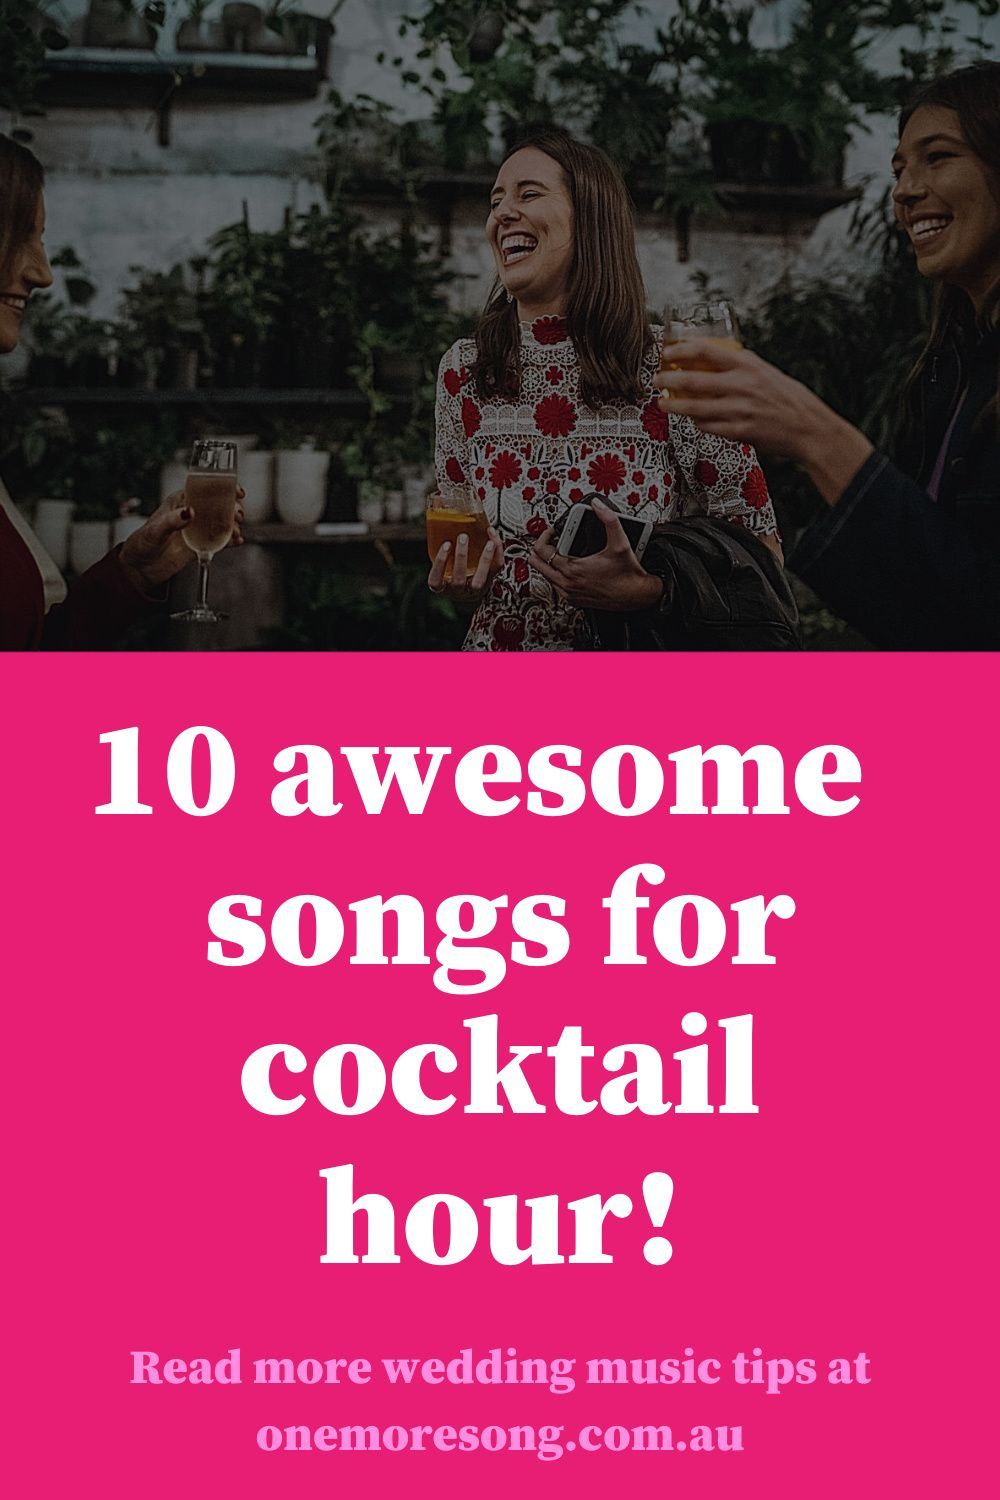 How do you set the right vibe for your wedding cocktail hour? Melbourne's One More Song DJs provide a list of 10 songs to play post ceremony. It's all about getting people in the mood for an amazing night! #weddingmusic #melbournedj #melbourneweddingsupplier #weddingdj #weddingblog Photo credit: Lulu & Lime.